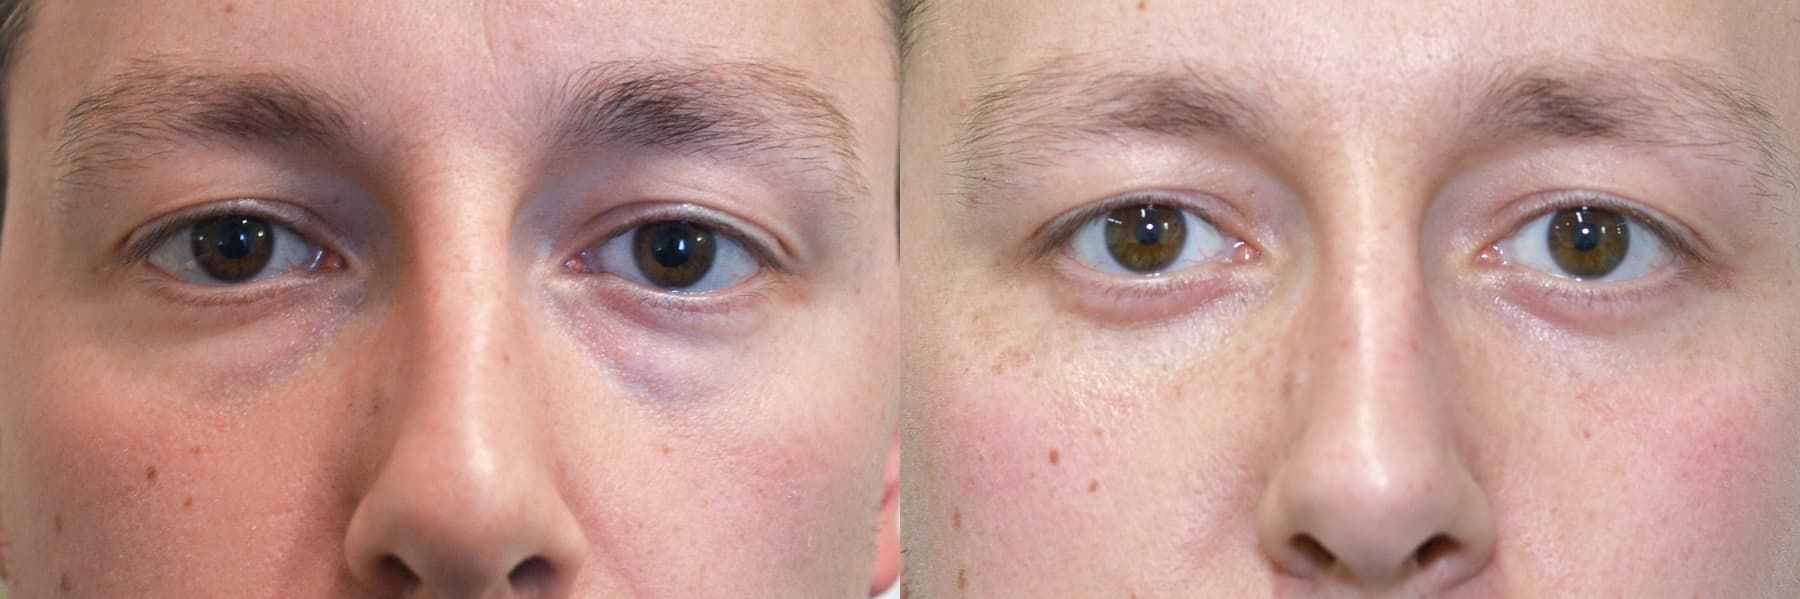 Eye Plastic Surgery Before After Pictures photo - 1